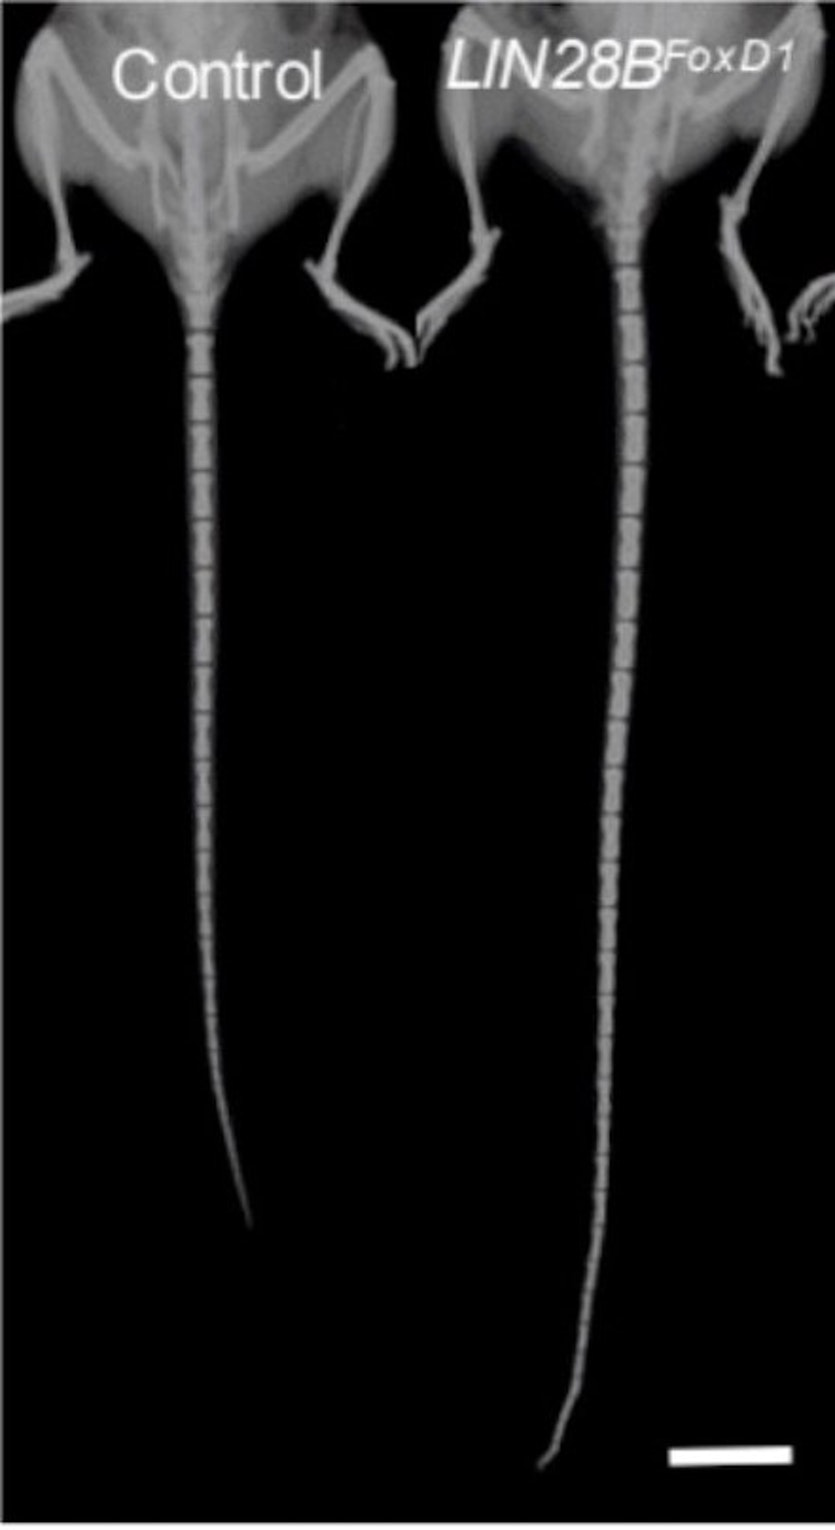 X-rays of control and FoxD1-LIN28B-induced animal from the Harvard study.